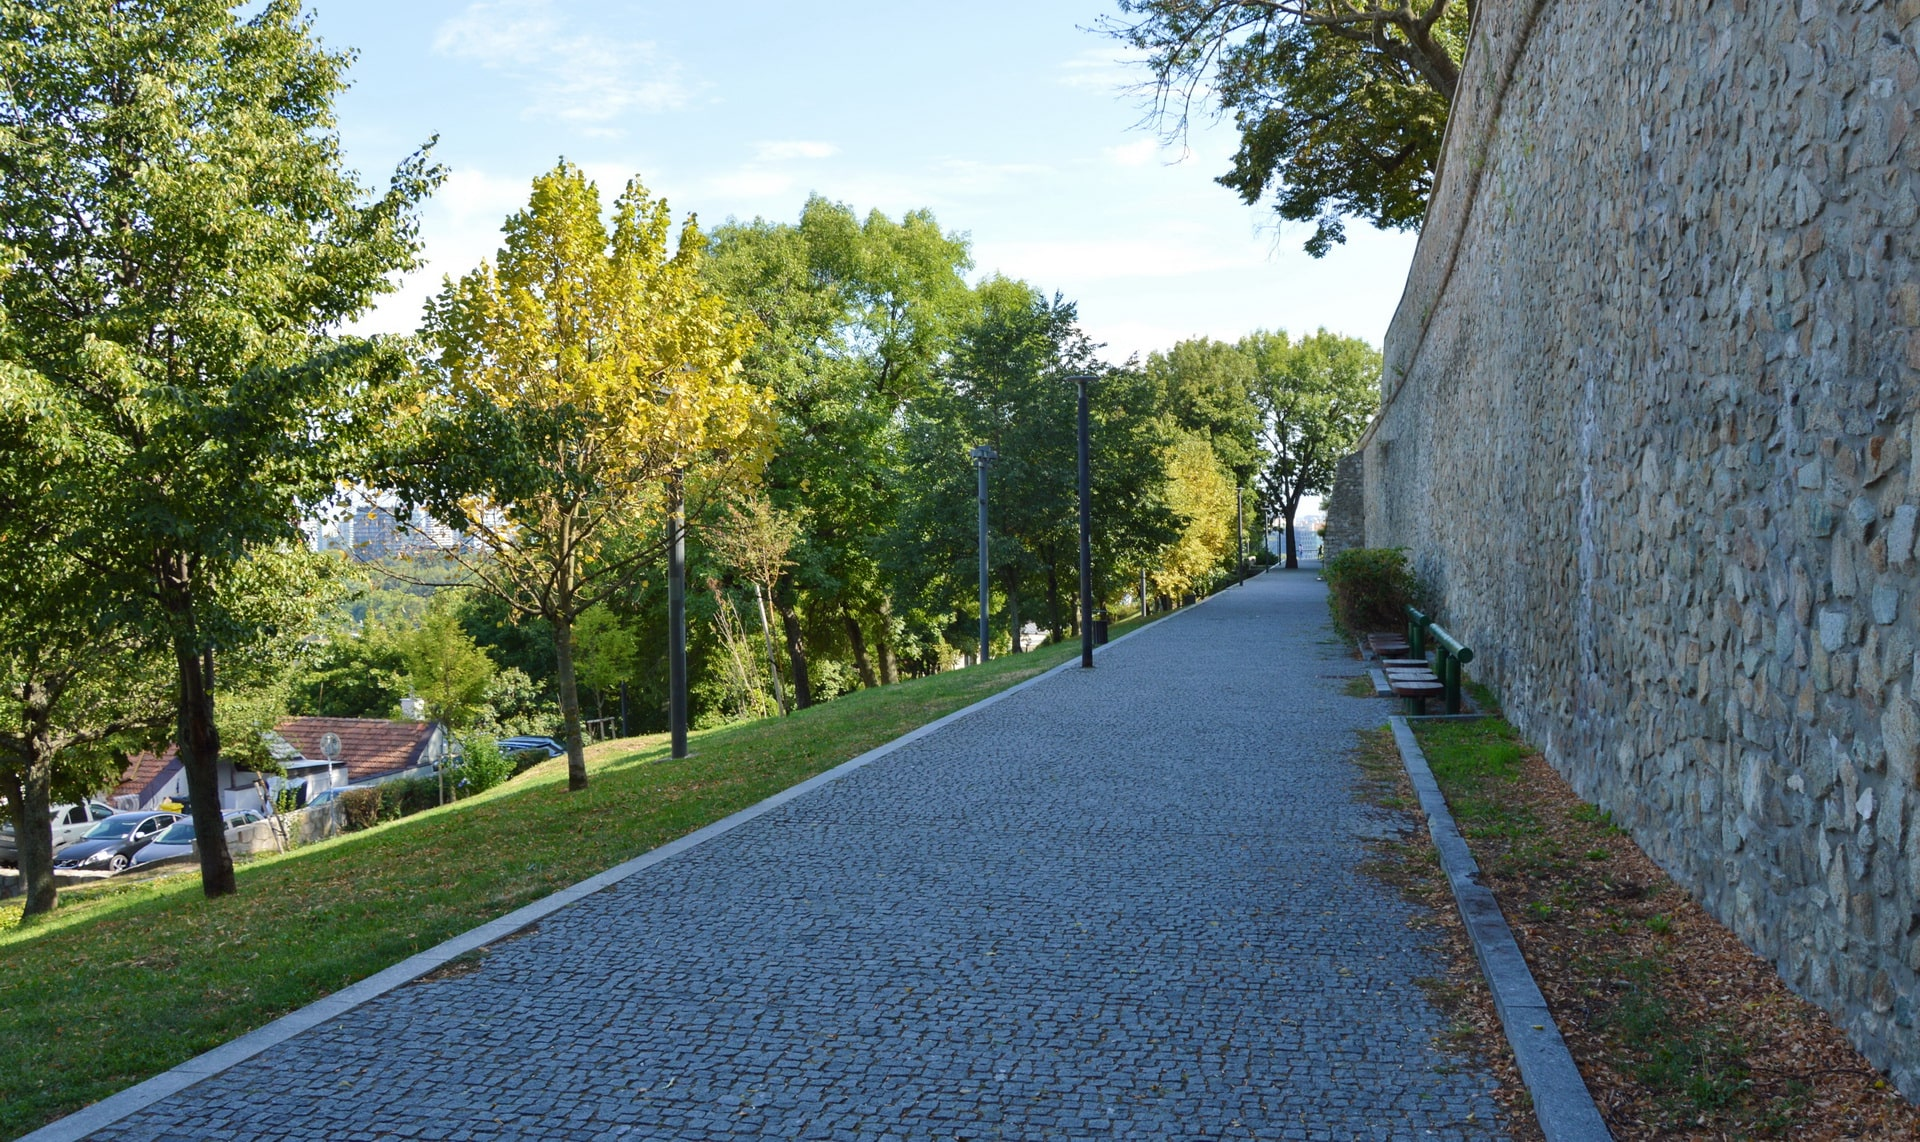 There is a park behind the walls of Bratislava Castle